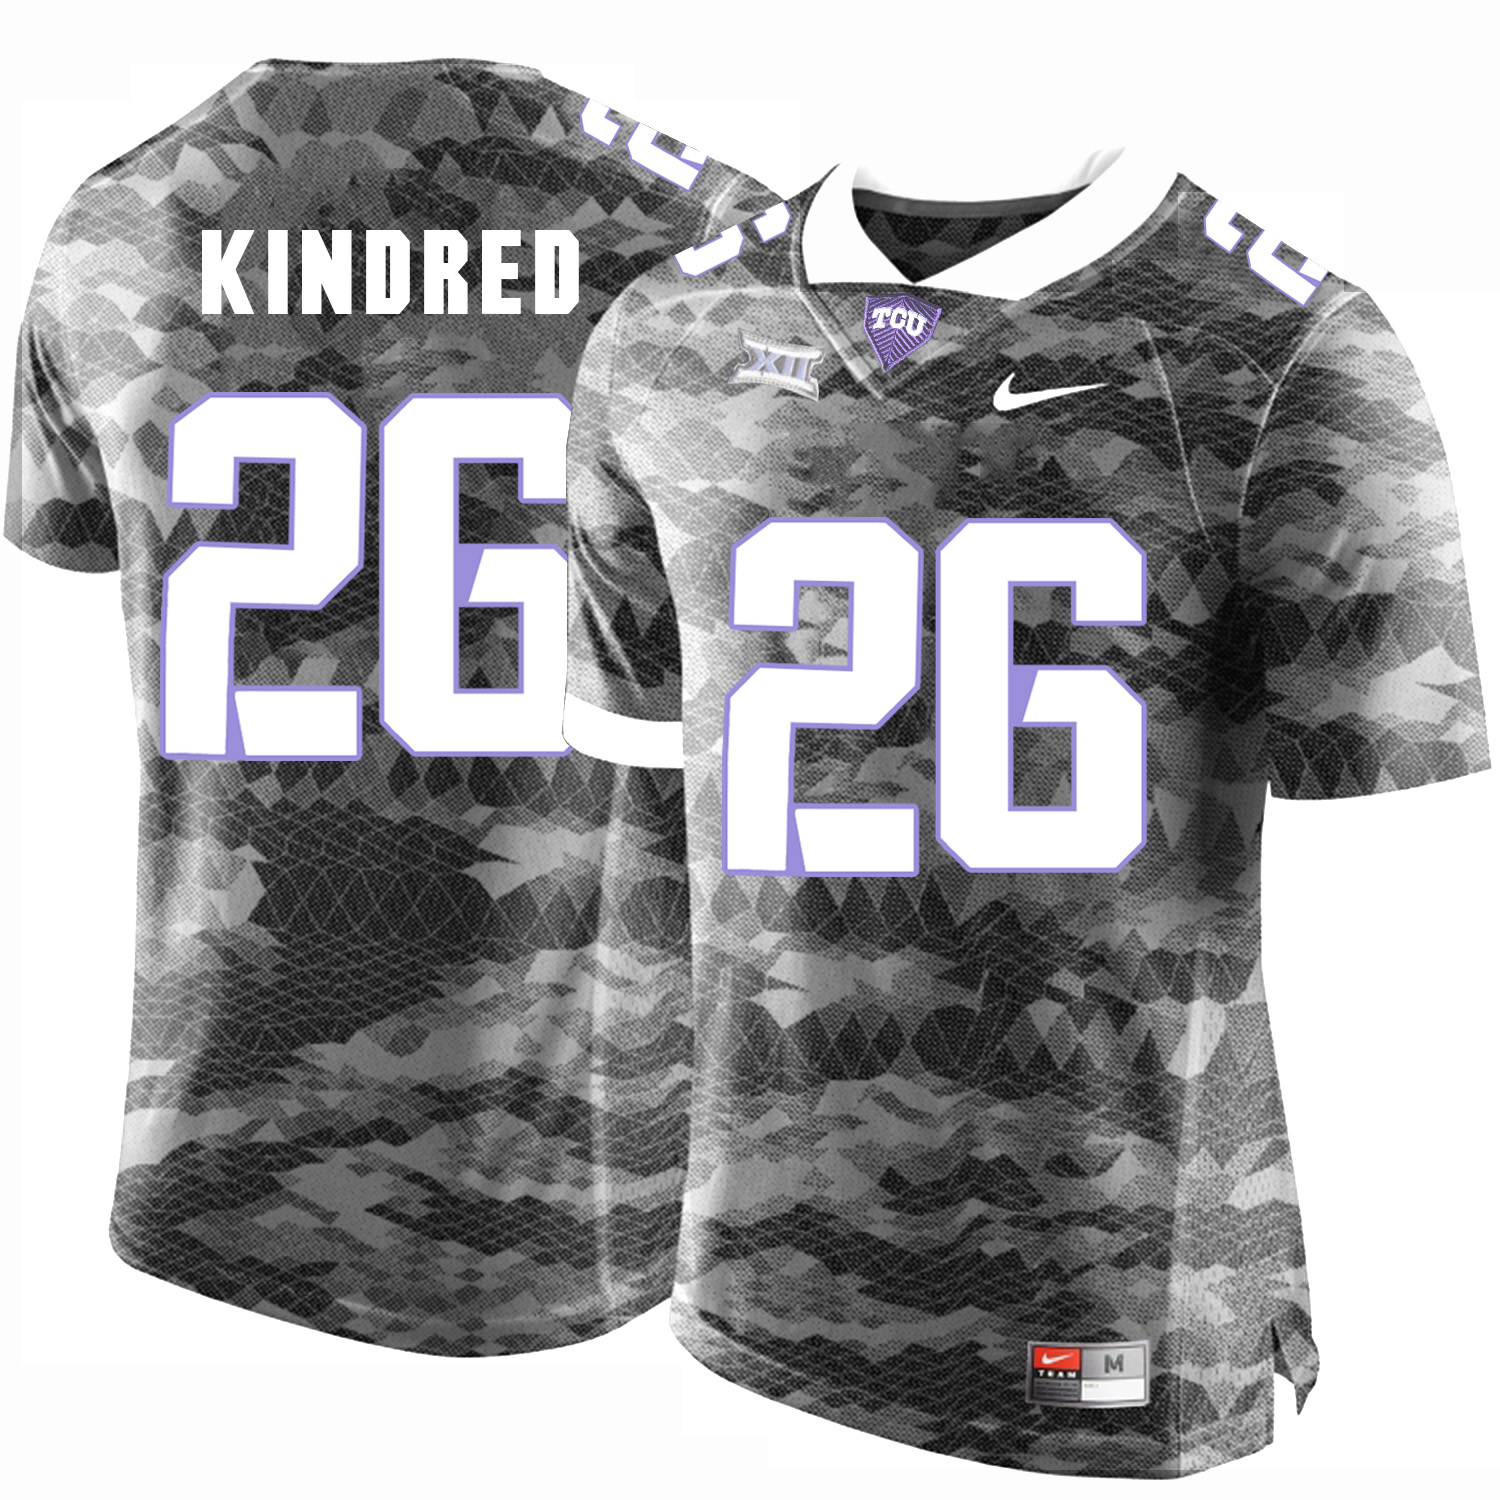 TCU Horned Frogs 26 Derrick Kindred Gray College Football Limited Jersey